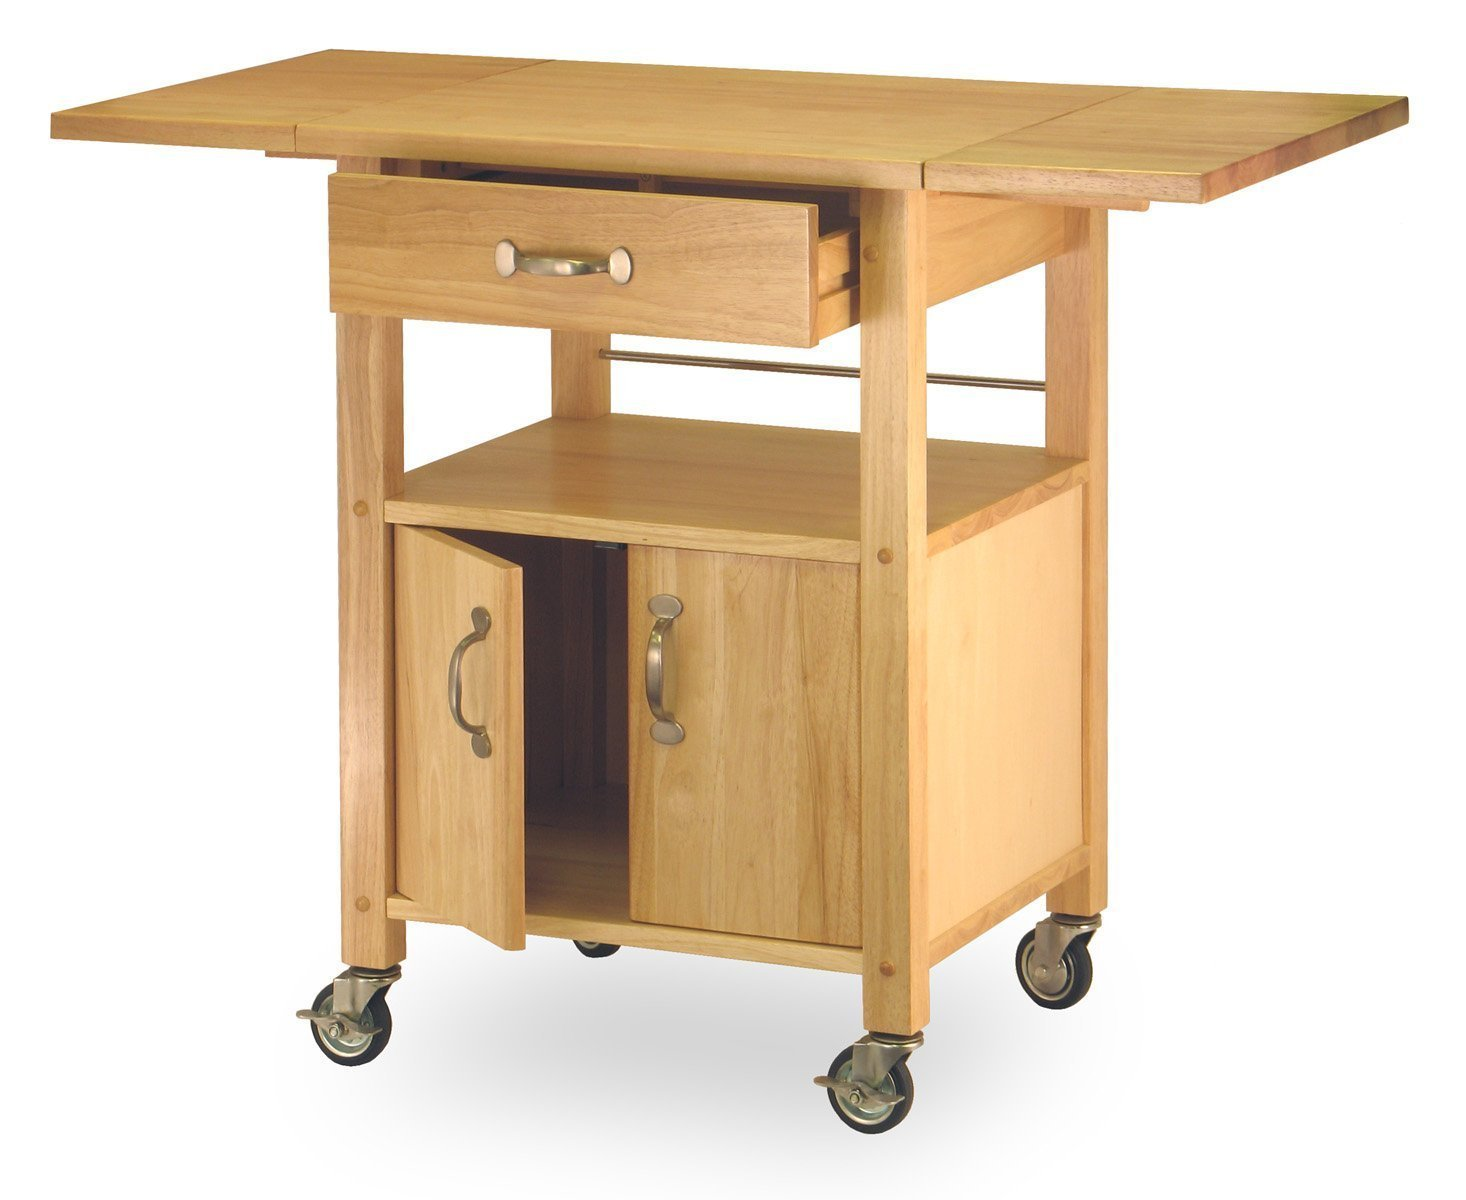 Amazon.com - Winsome Wood Drop-Leaf Kitchen Cart - Bar & Serving Carts